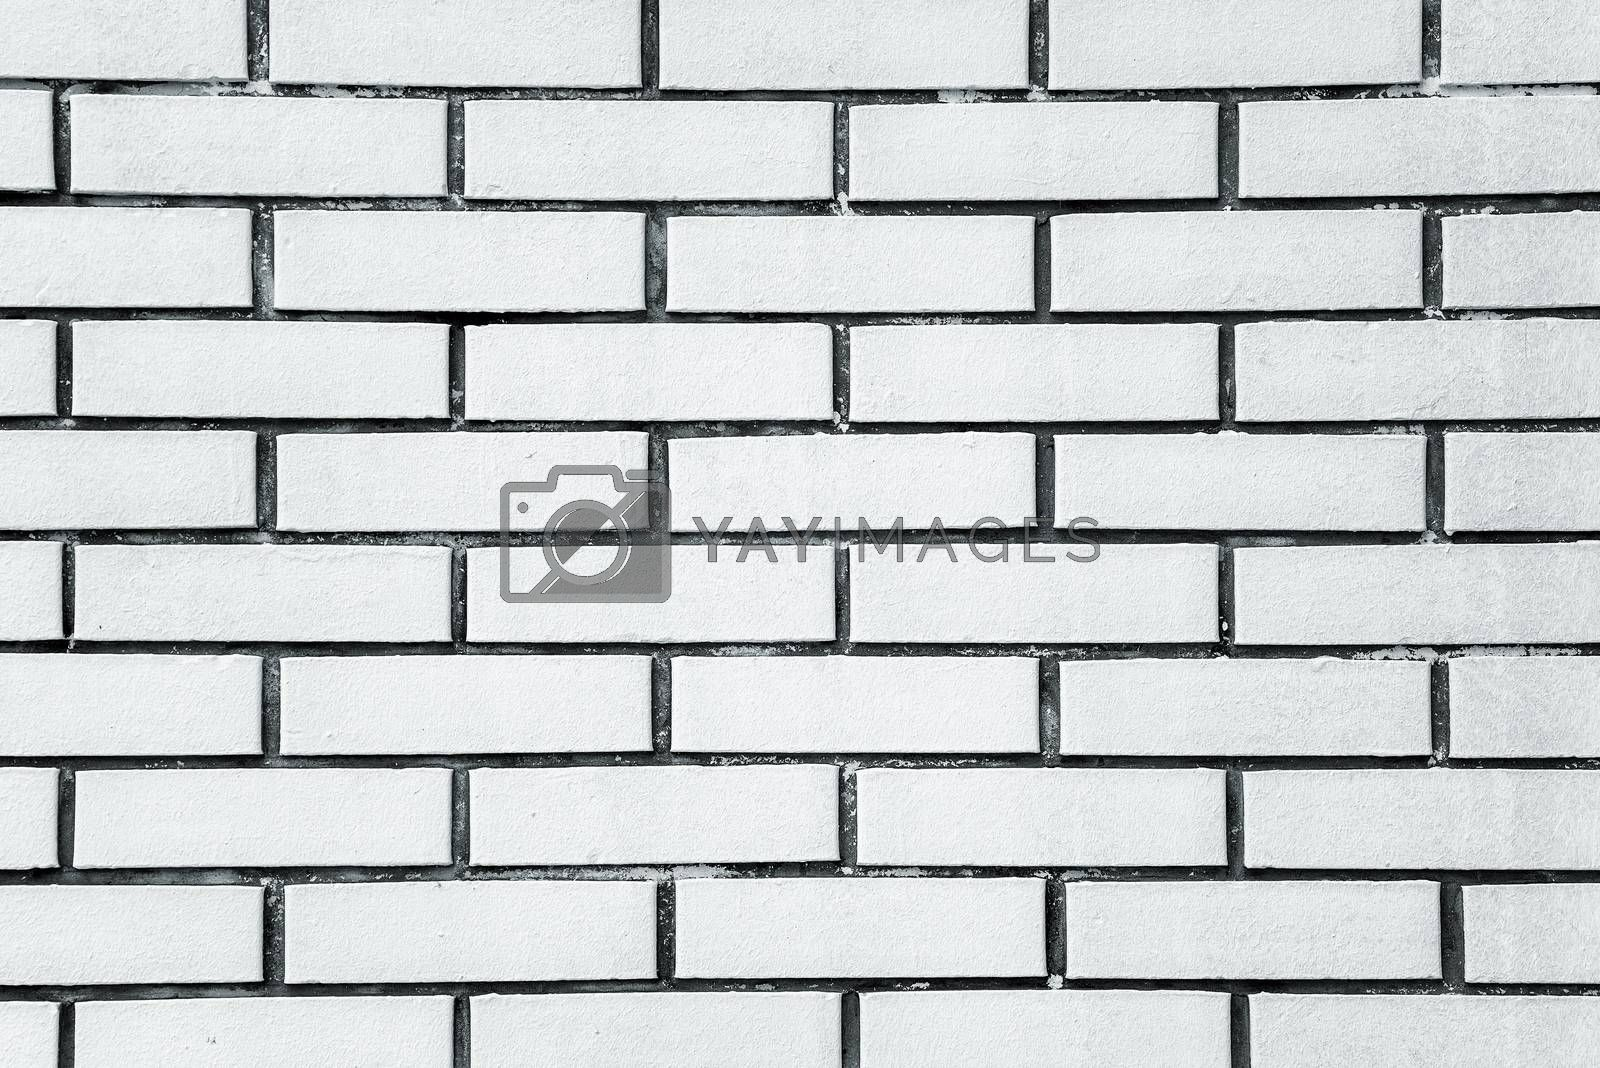 White brick wall texture, brickwork wall detail